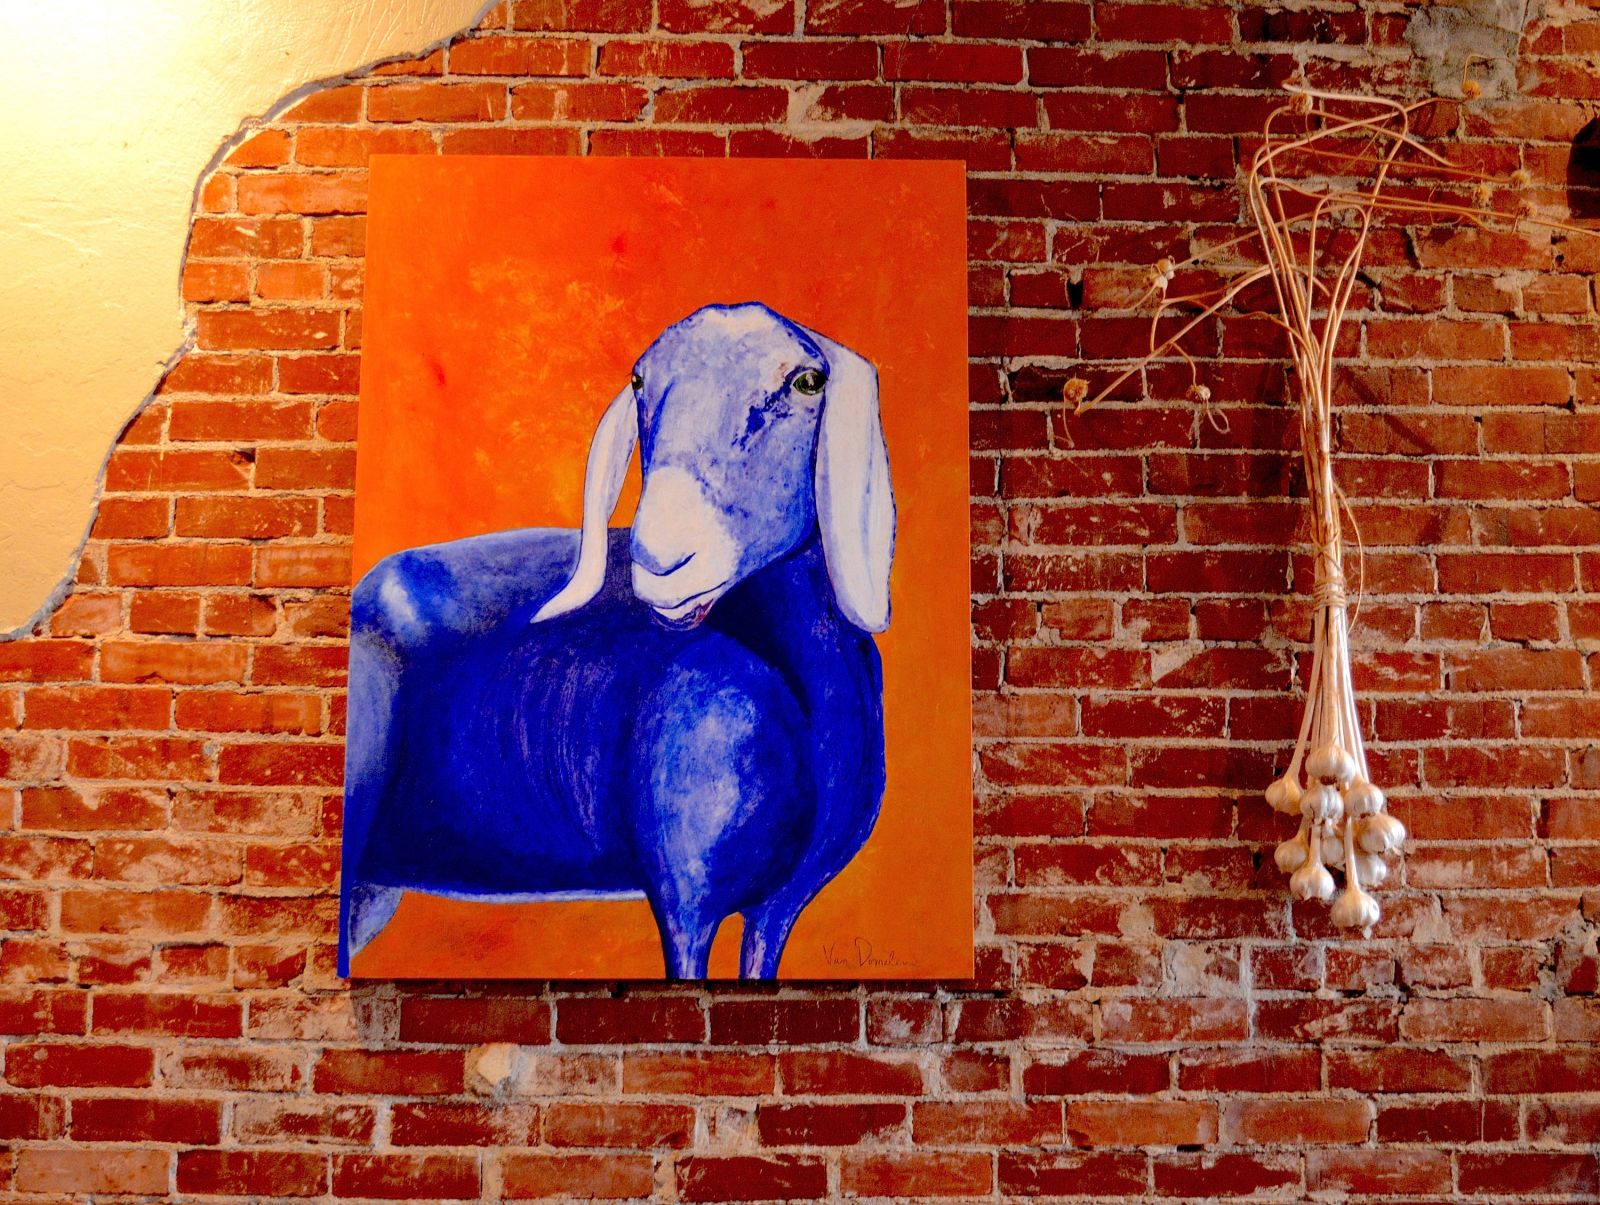 blue-goat-wall-amity-oregon